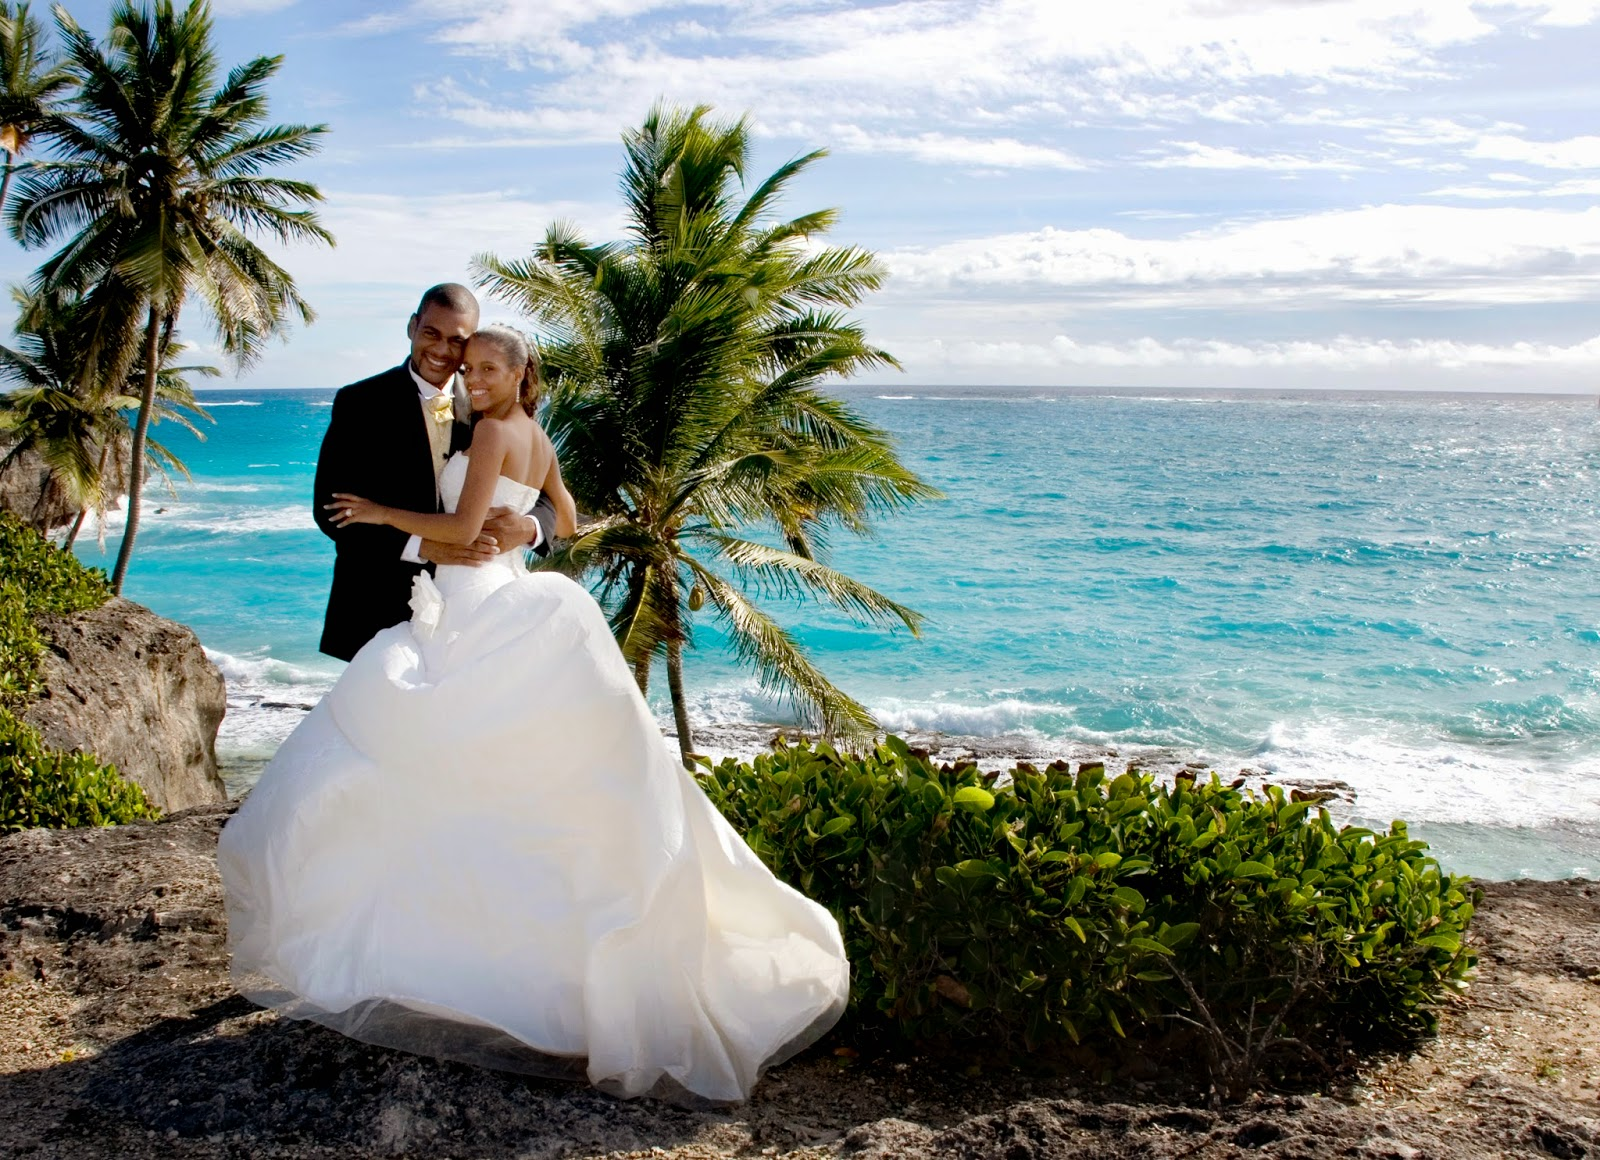 Canadian Brides Fly Stay And Wed For Free In Barbados The Compeive Market Of Destination Weddings